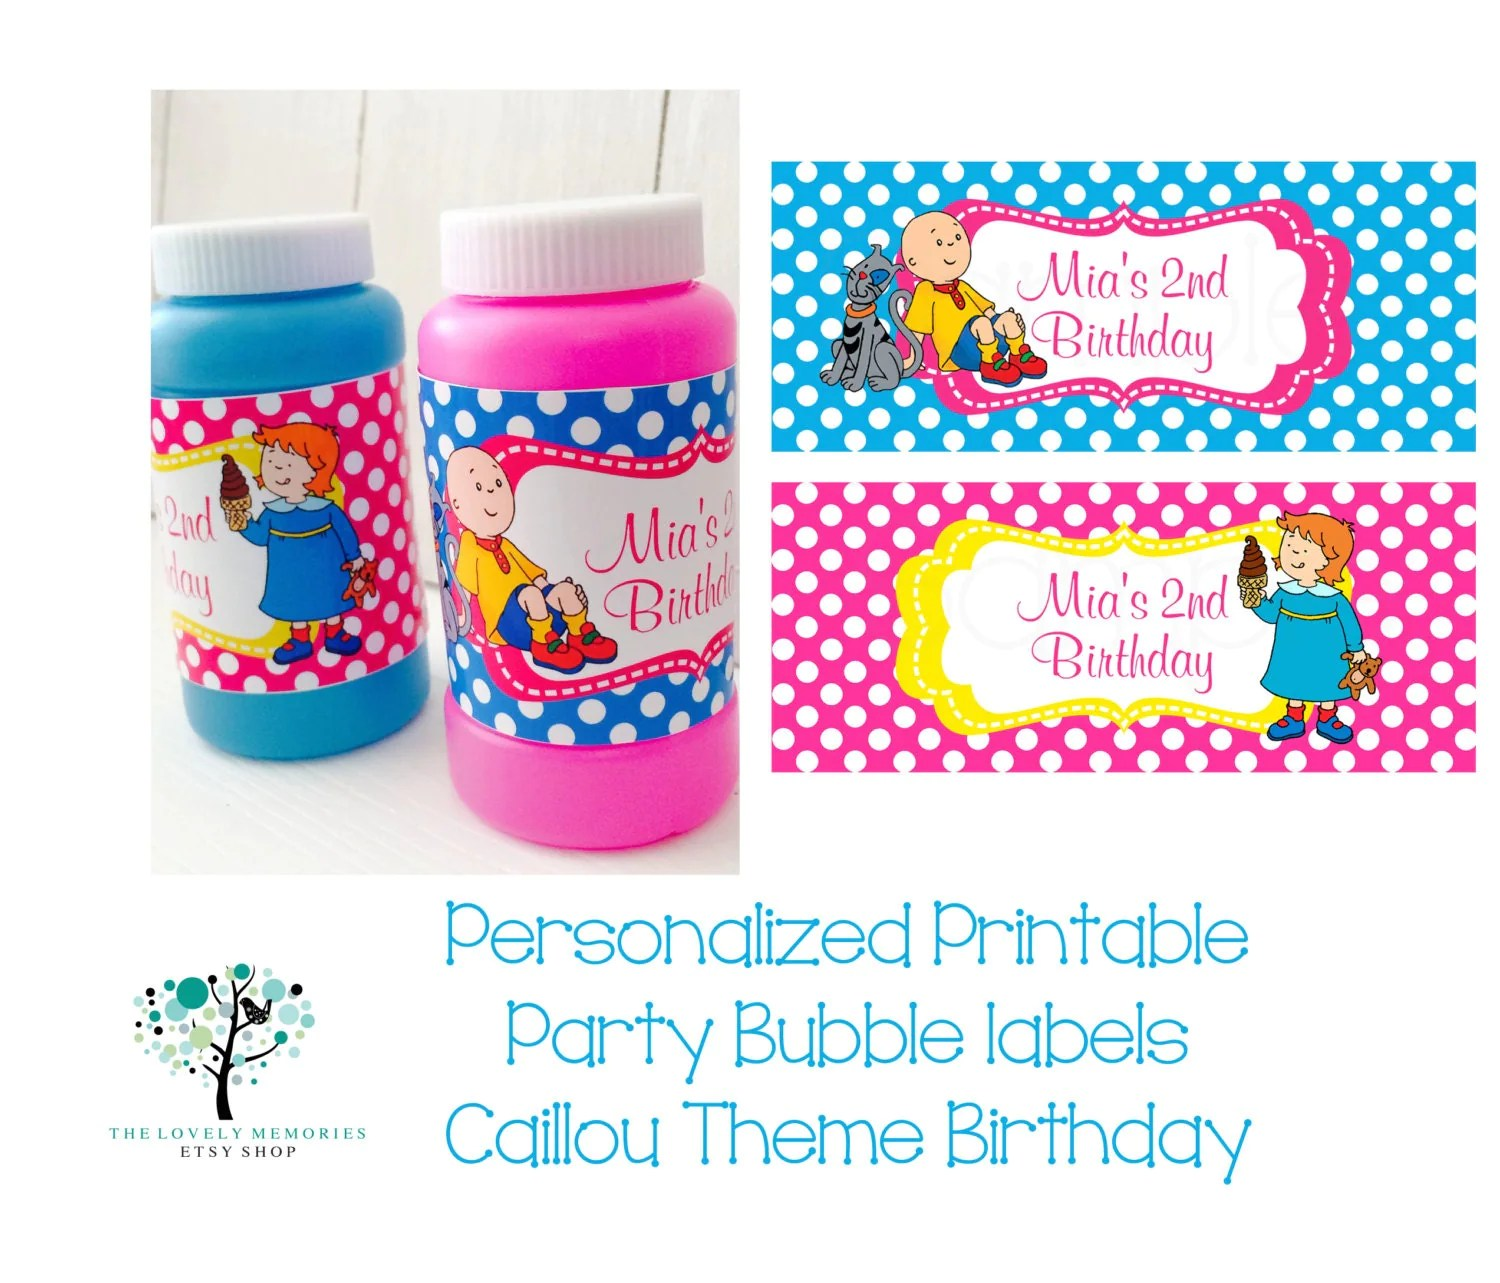 Personalized Printable Party Bubble Labels Caillou Theme